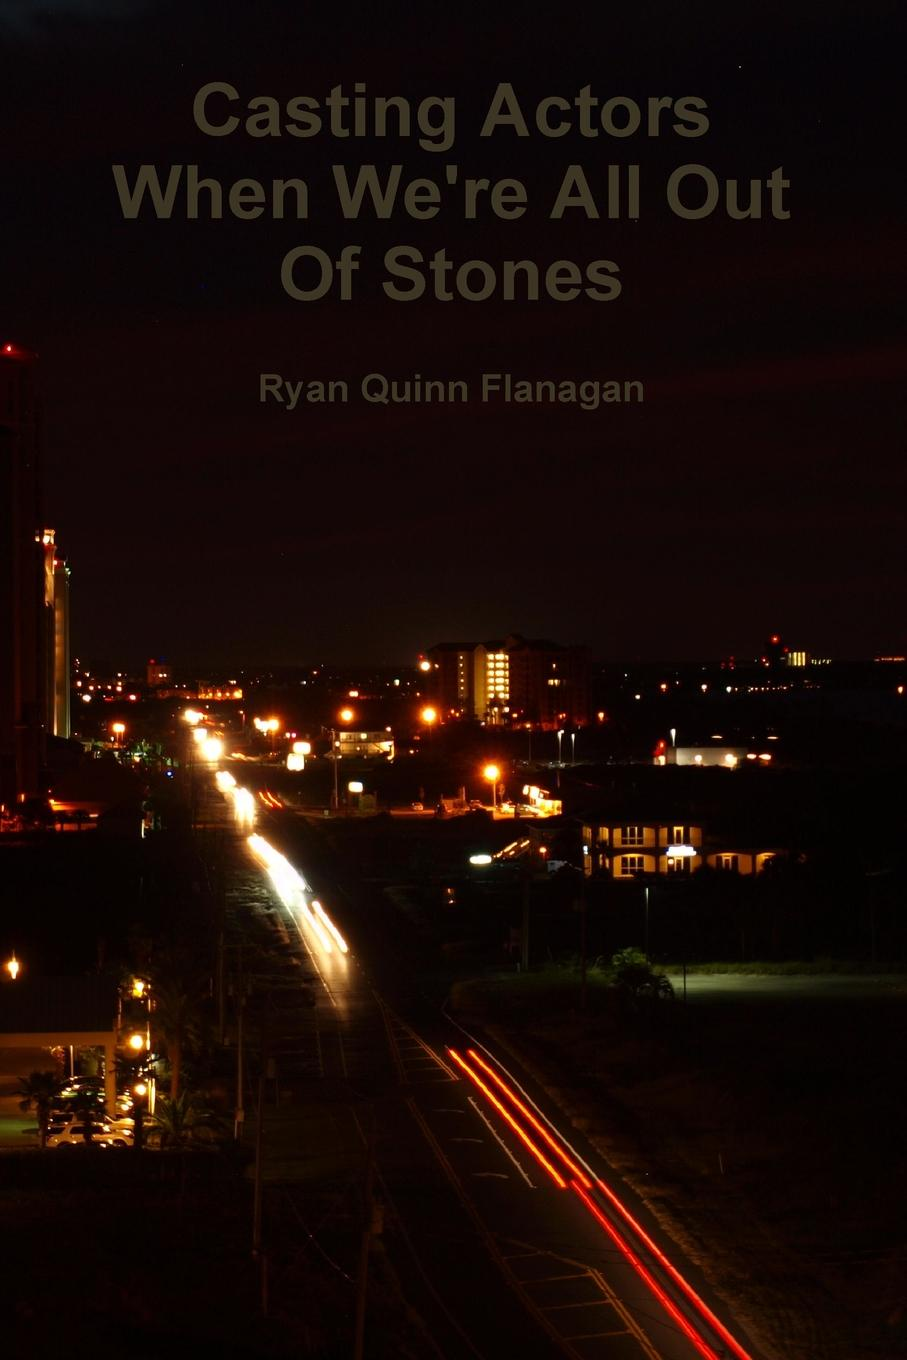 Ryan Quinn Flanagan Casting Actors When We.re All Out Of Stones ryan d all we shall know